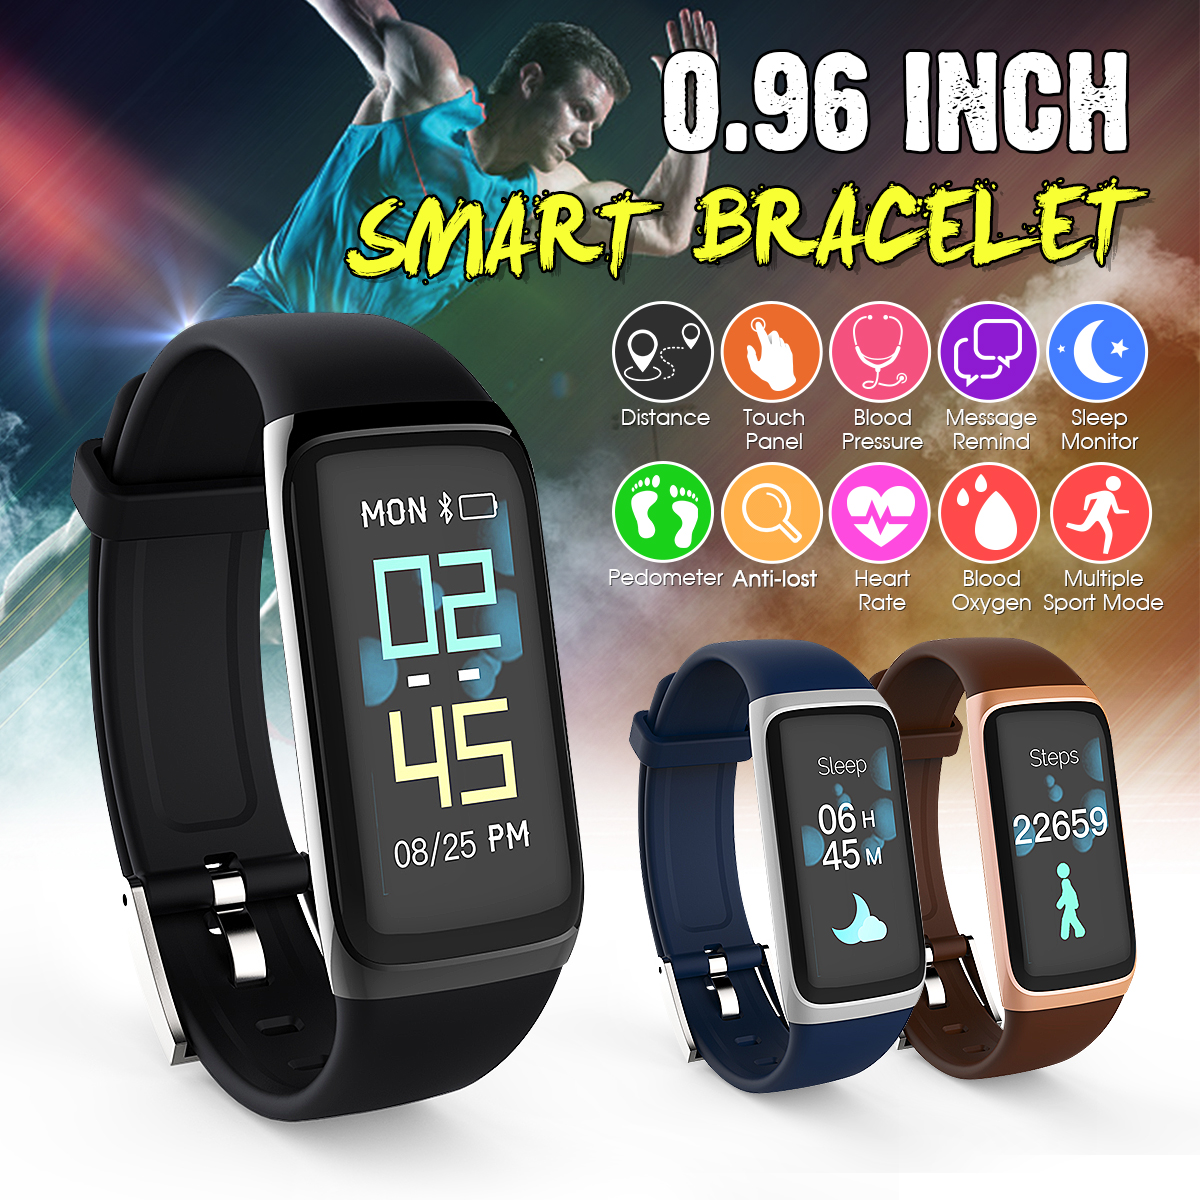 Activity Tracker Watch Smart Watch Waterproof Sports Fitness Tracker Wristband OLED Display Bluetooth Running Wrist Watches Heart Rate Blood Pressure Monitor